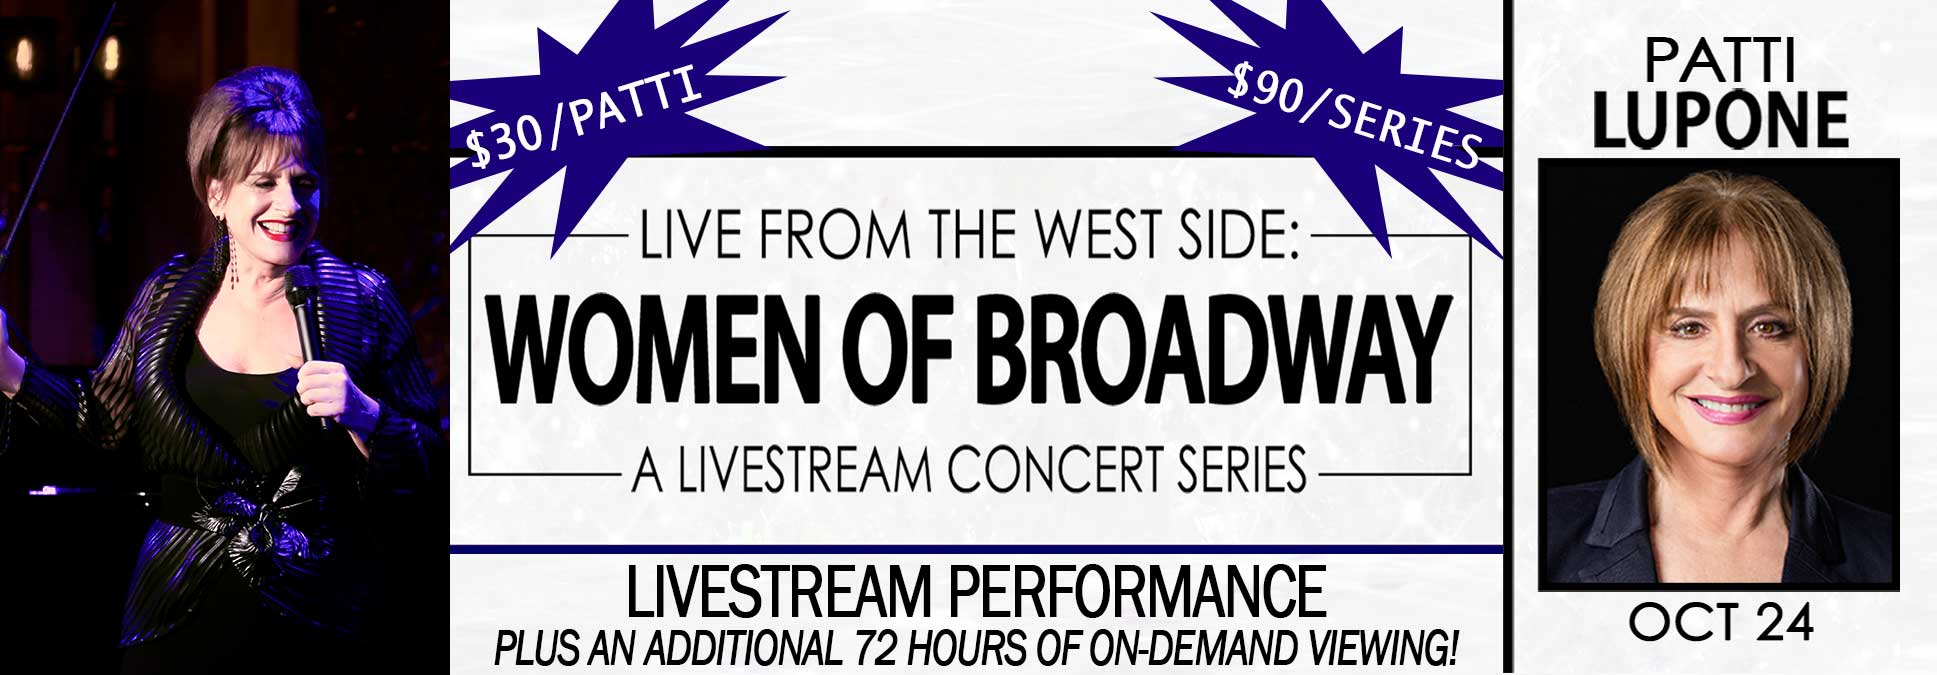 Women Of Broadway Concert Series Patti Lupone Marcus Center